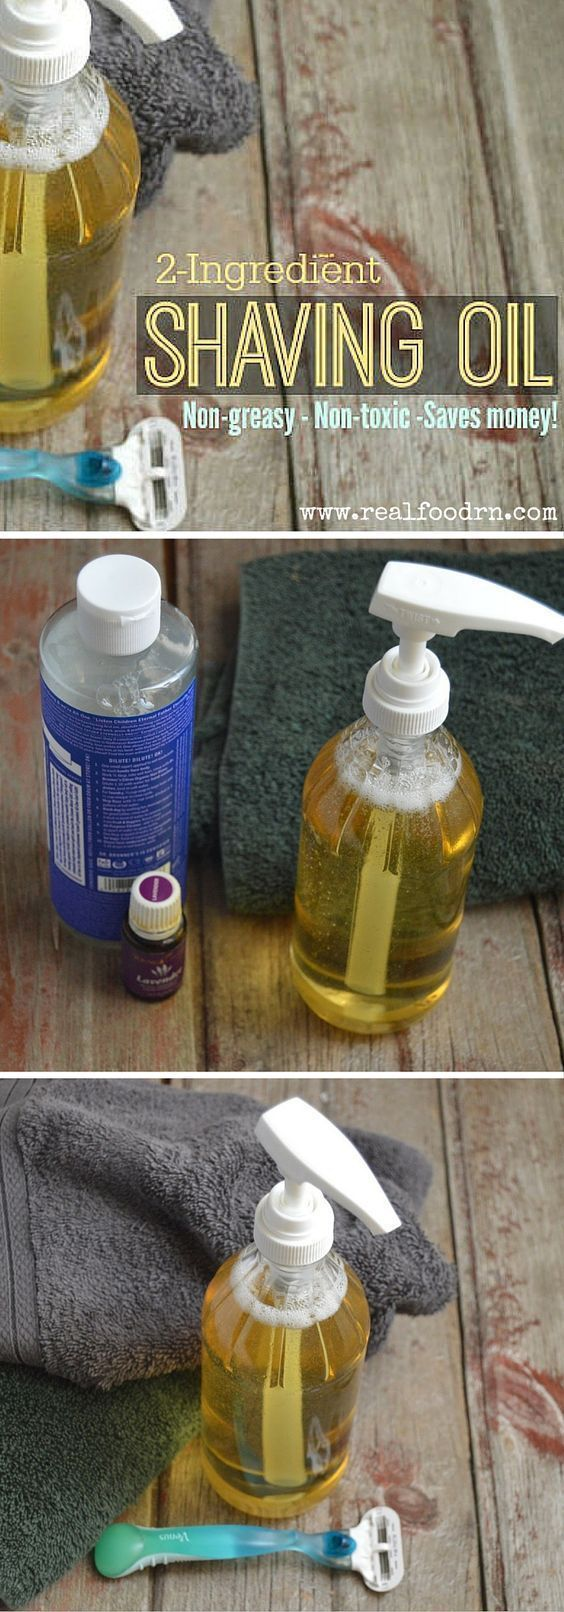 2-ingredient Non-toxic Shaving Oil. Non-toxic shaving oil that takes seconds to make and is my new favorite shaving oil! It gives you a great shave (for men and women!) and also keeps your skin super soft. Way better than those chemical filled shaving creams from a can!